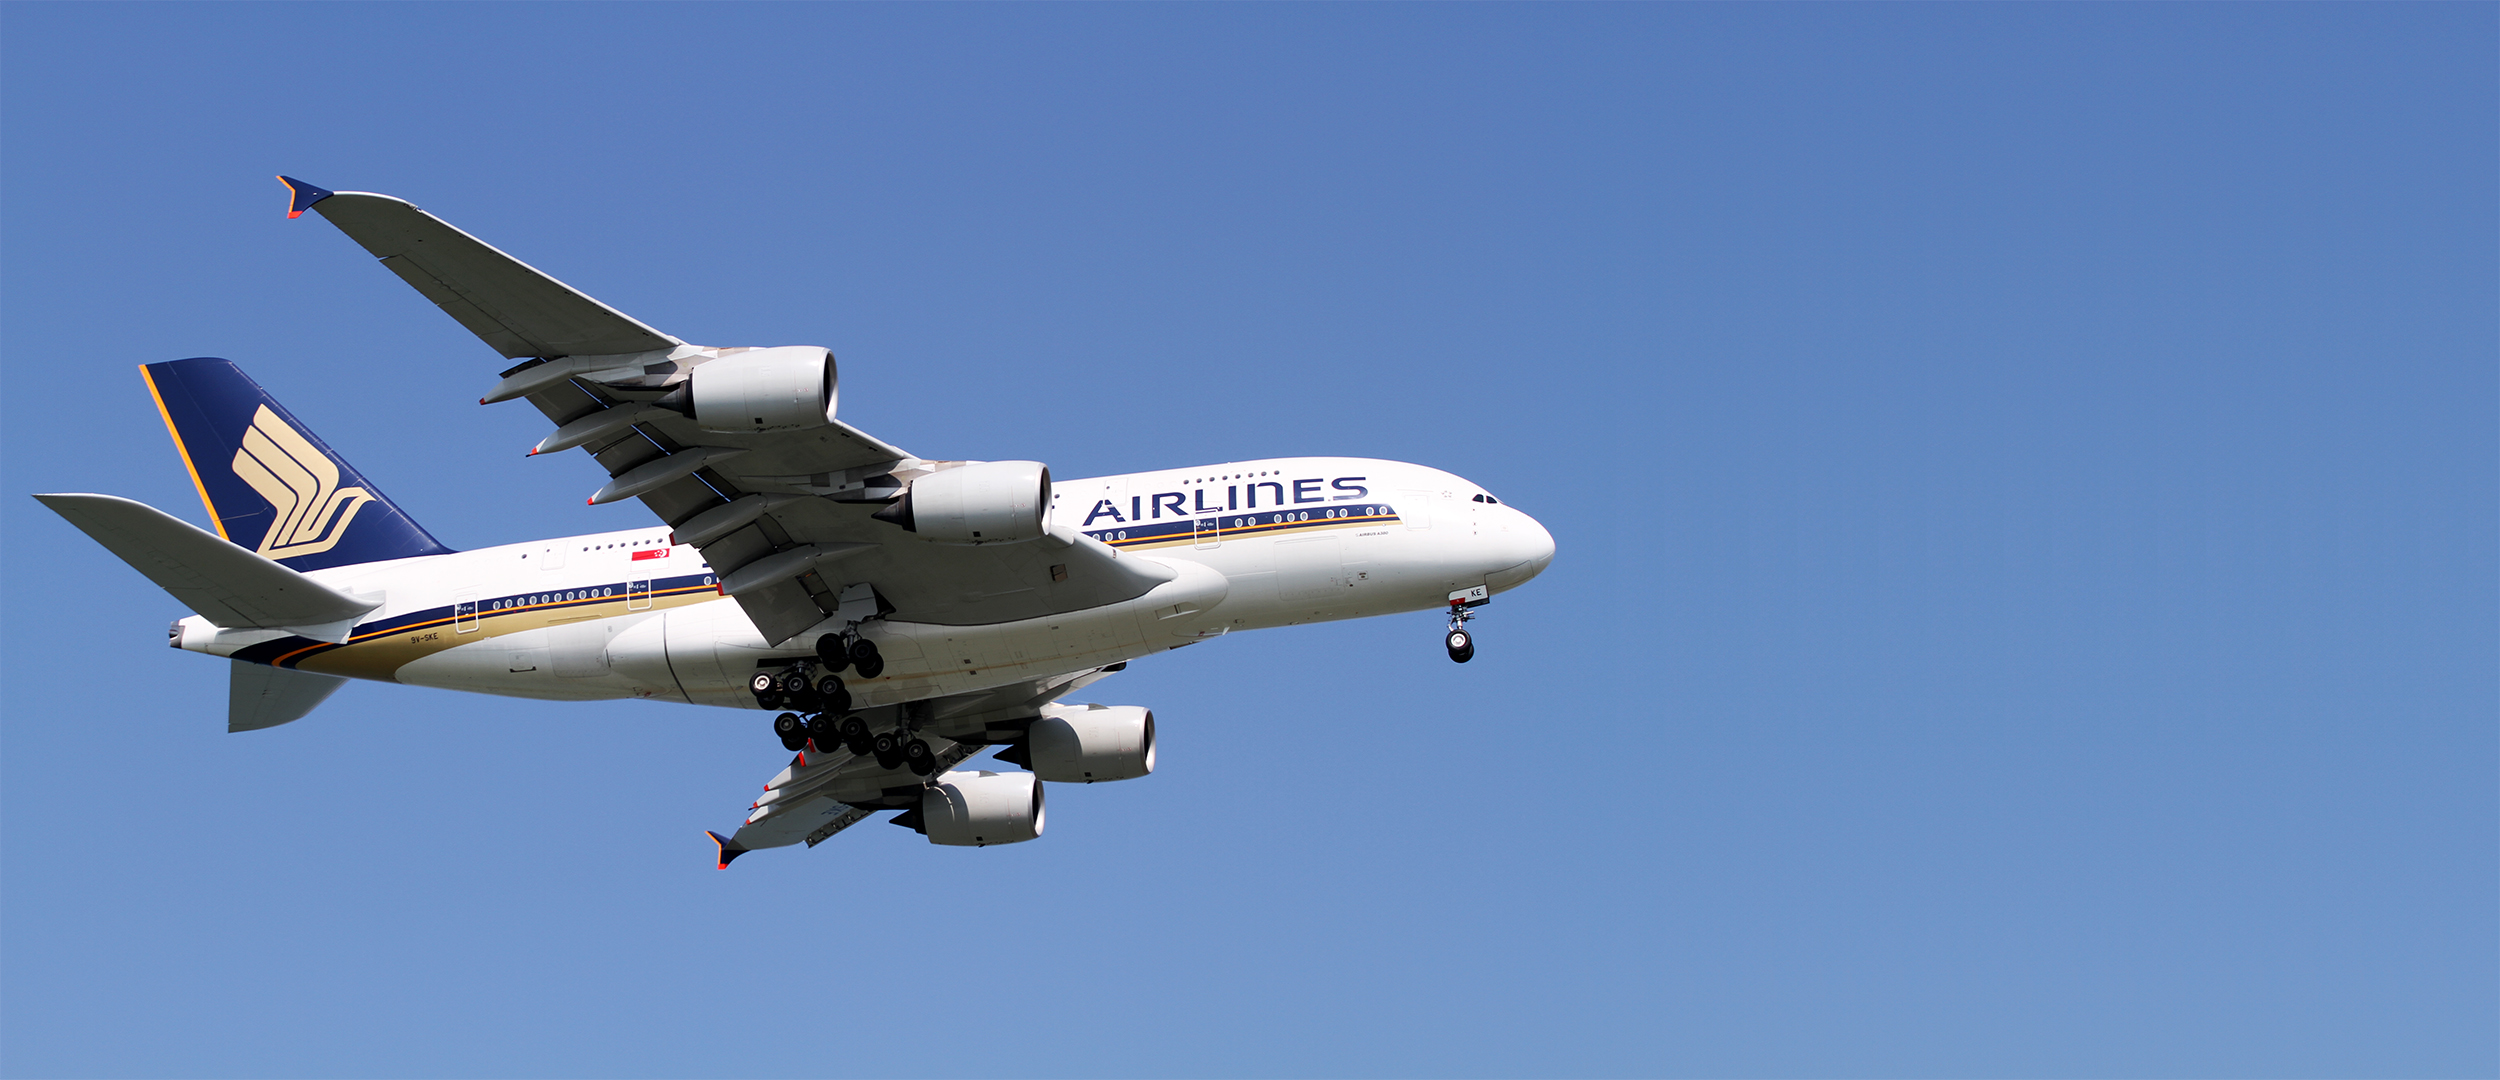 Singapore Airlines will fly daily A380 flights to Tokyo next summer ...